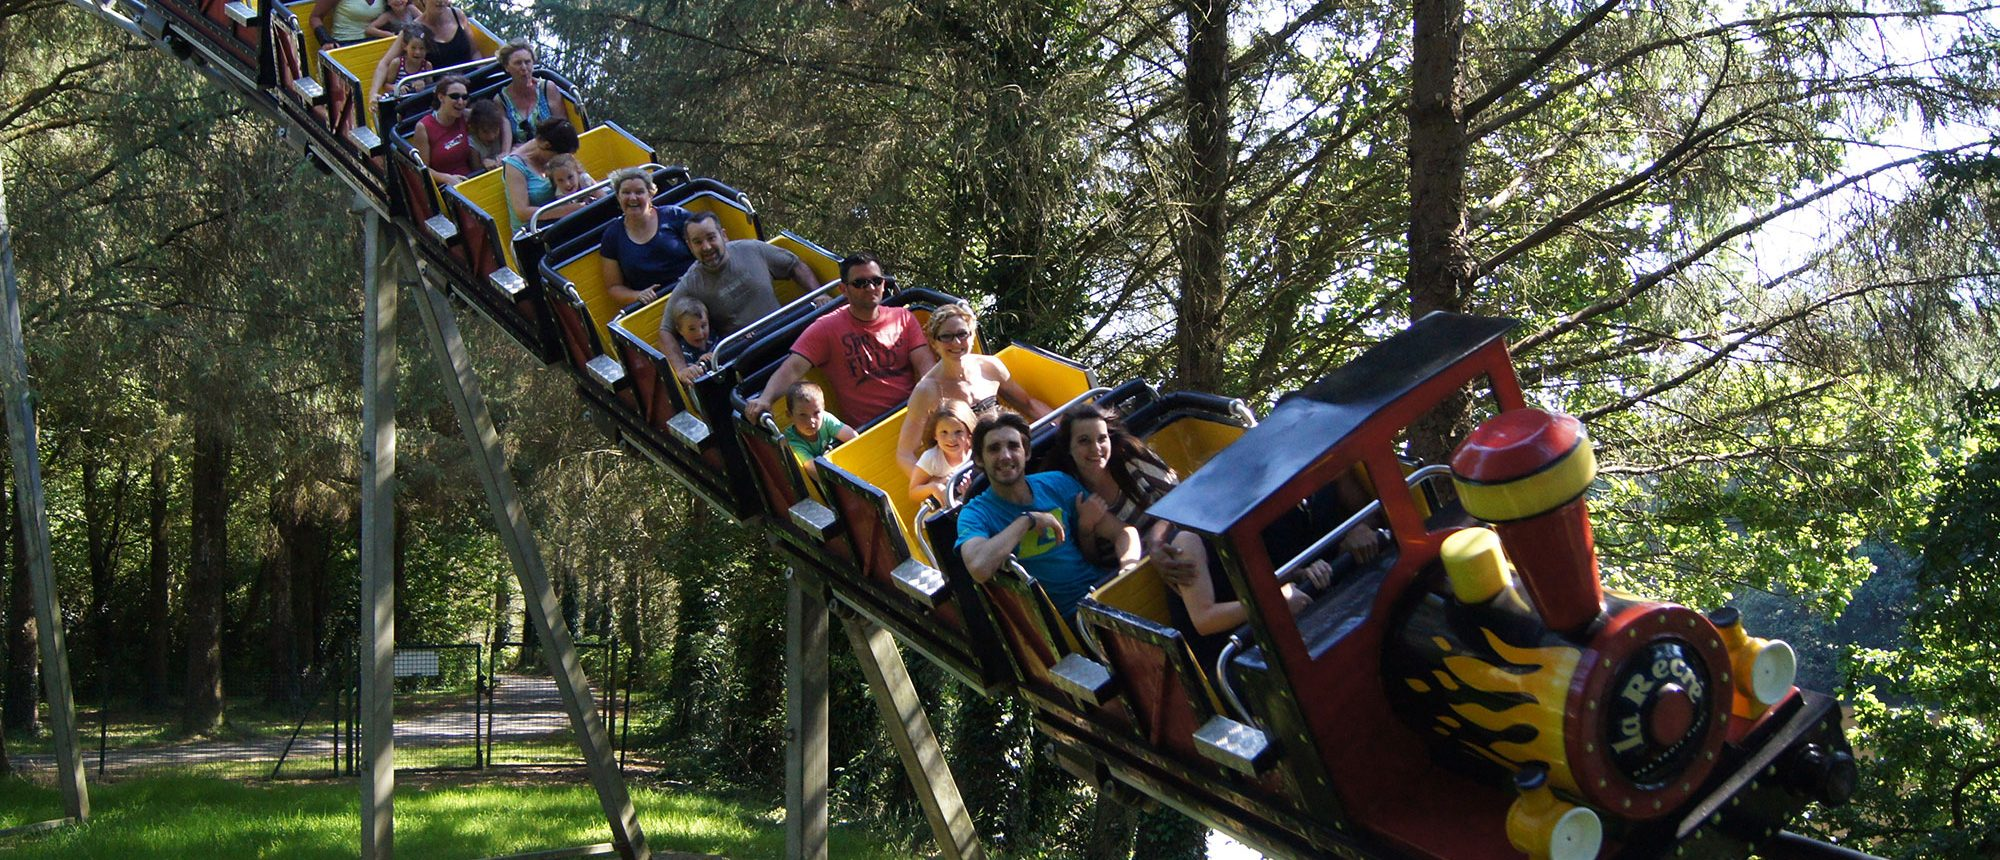 Parc d'attraction en Bretagne La récré